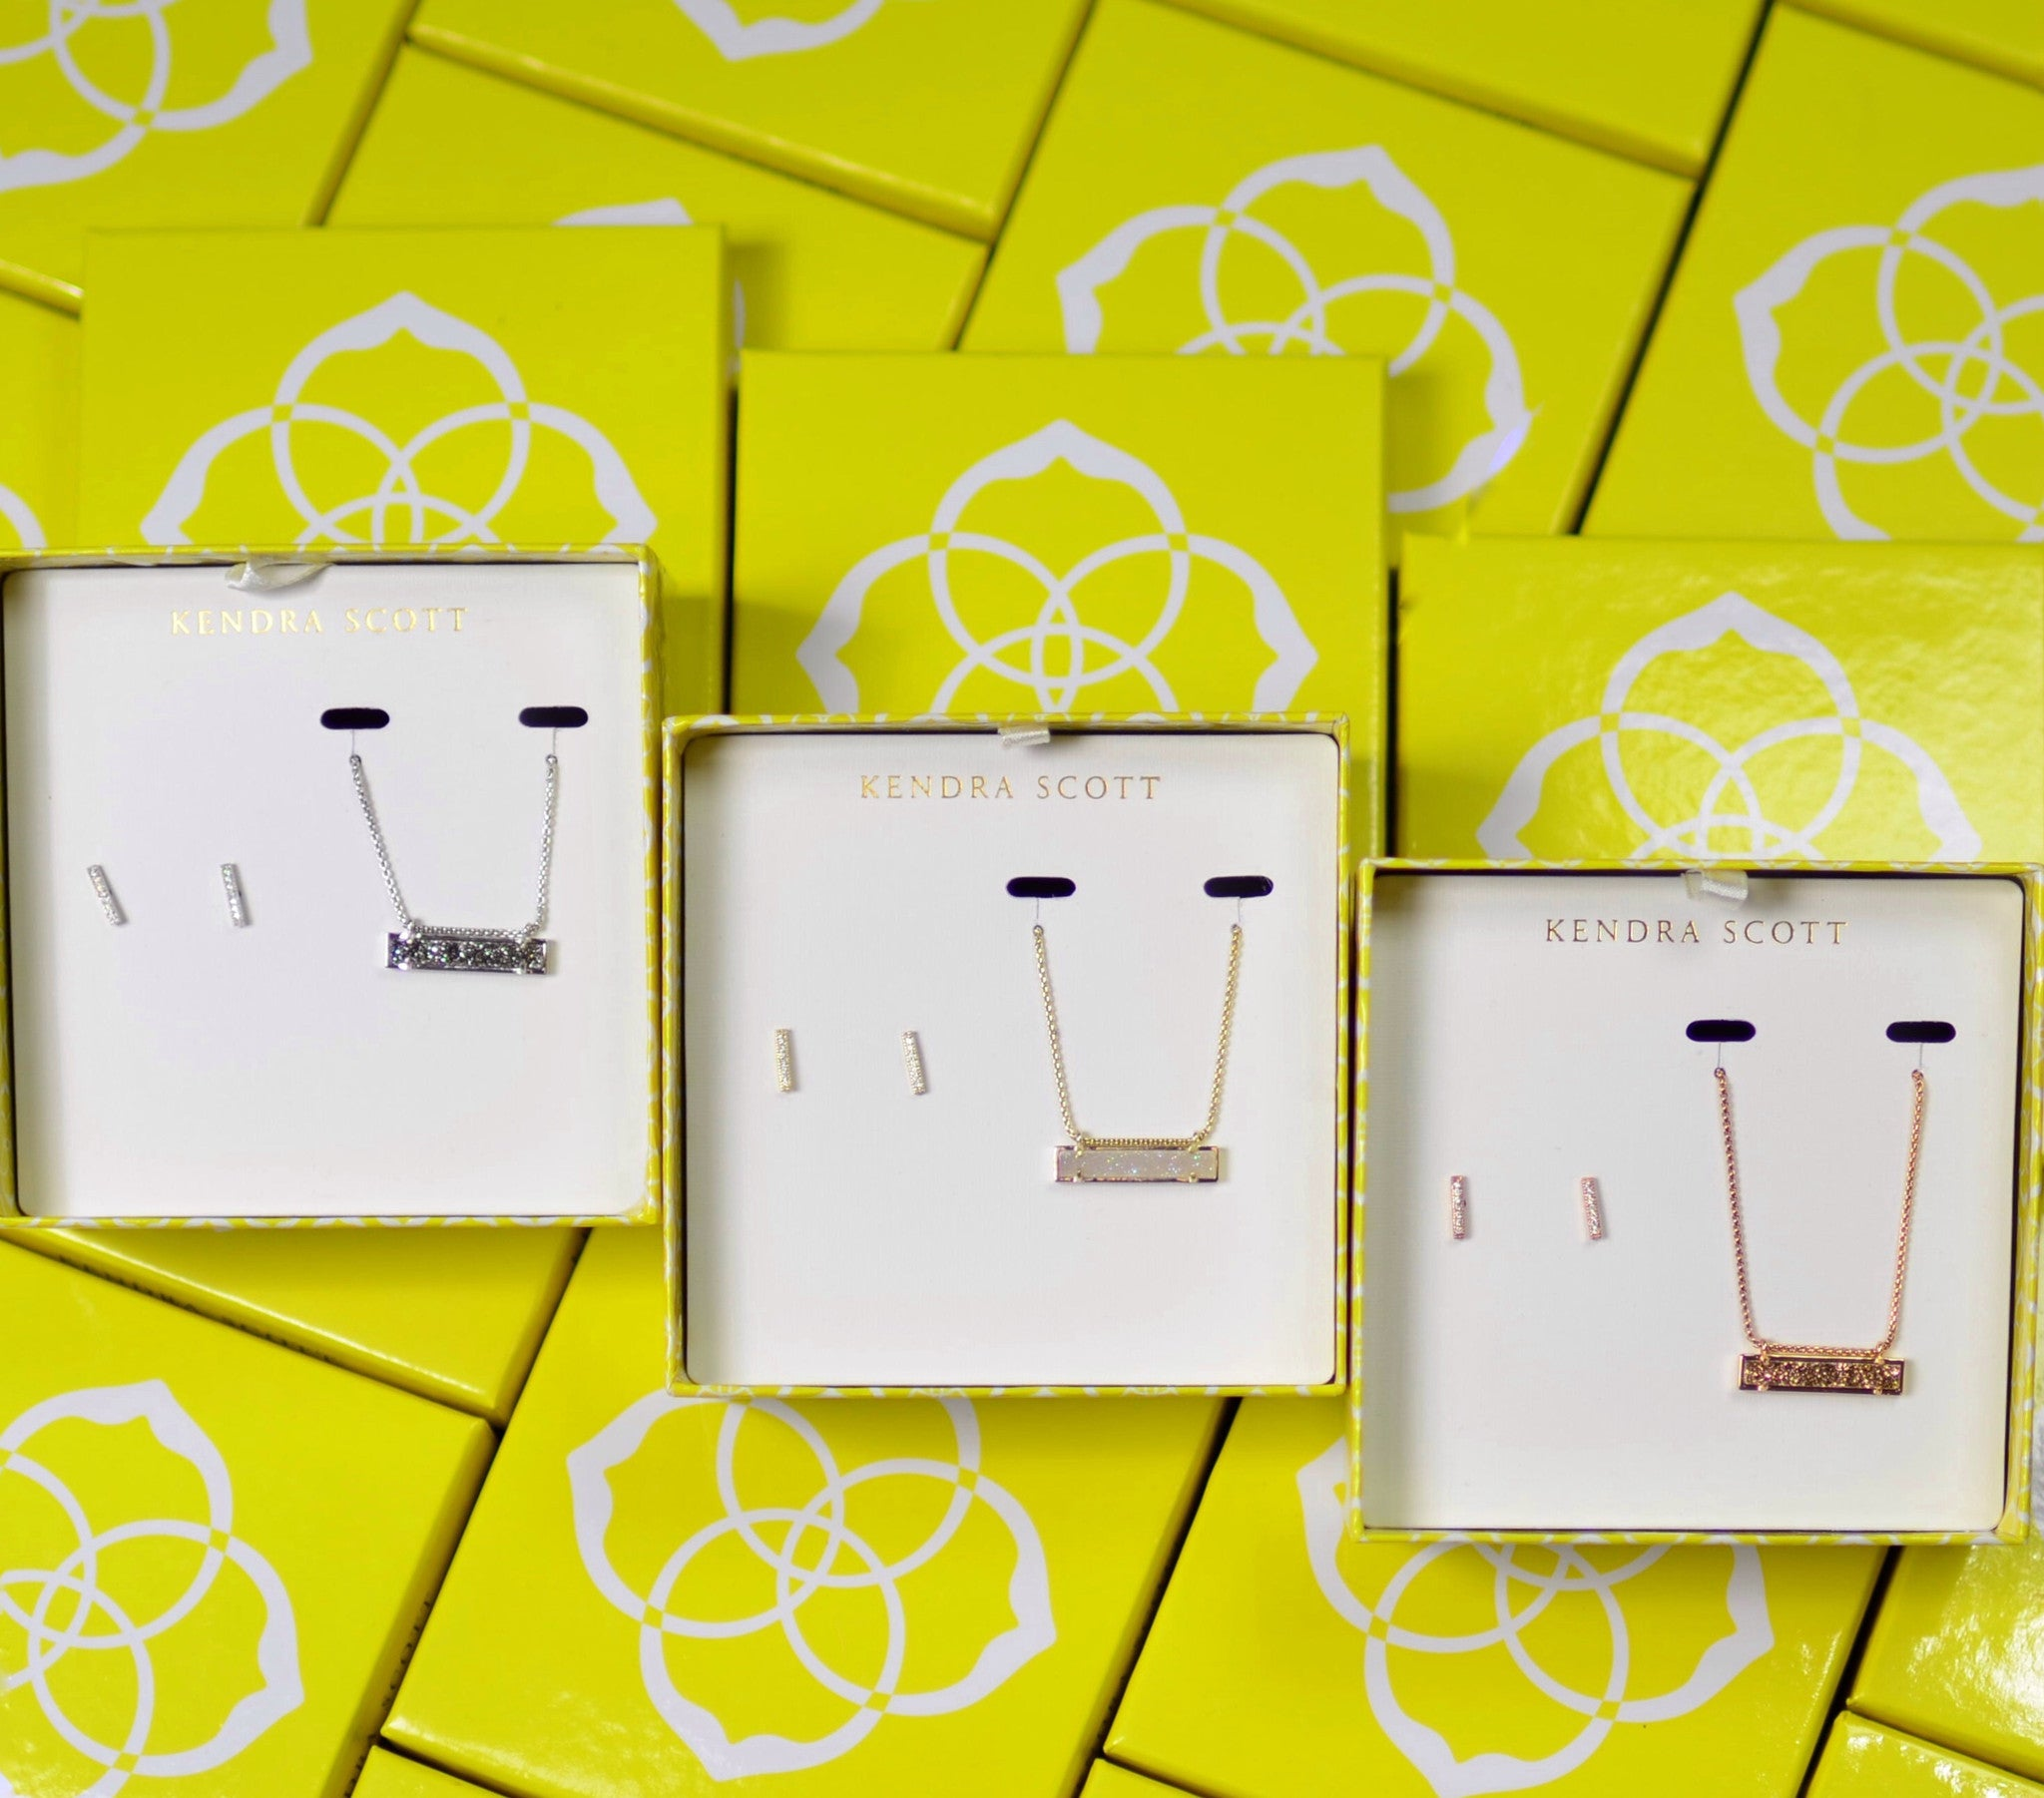 Kendra Scott Leanor & Jon Gift Set